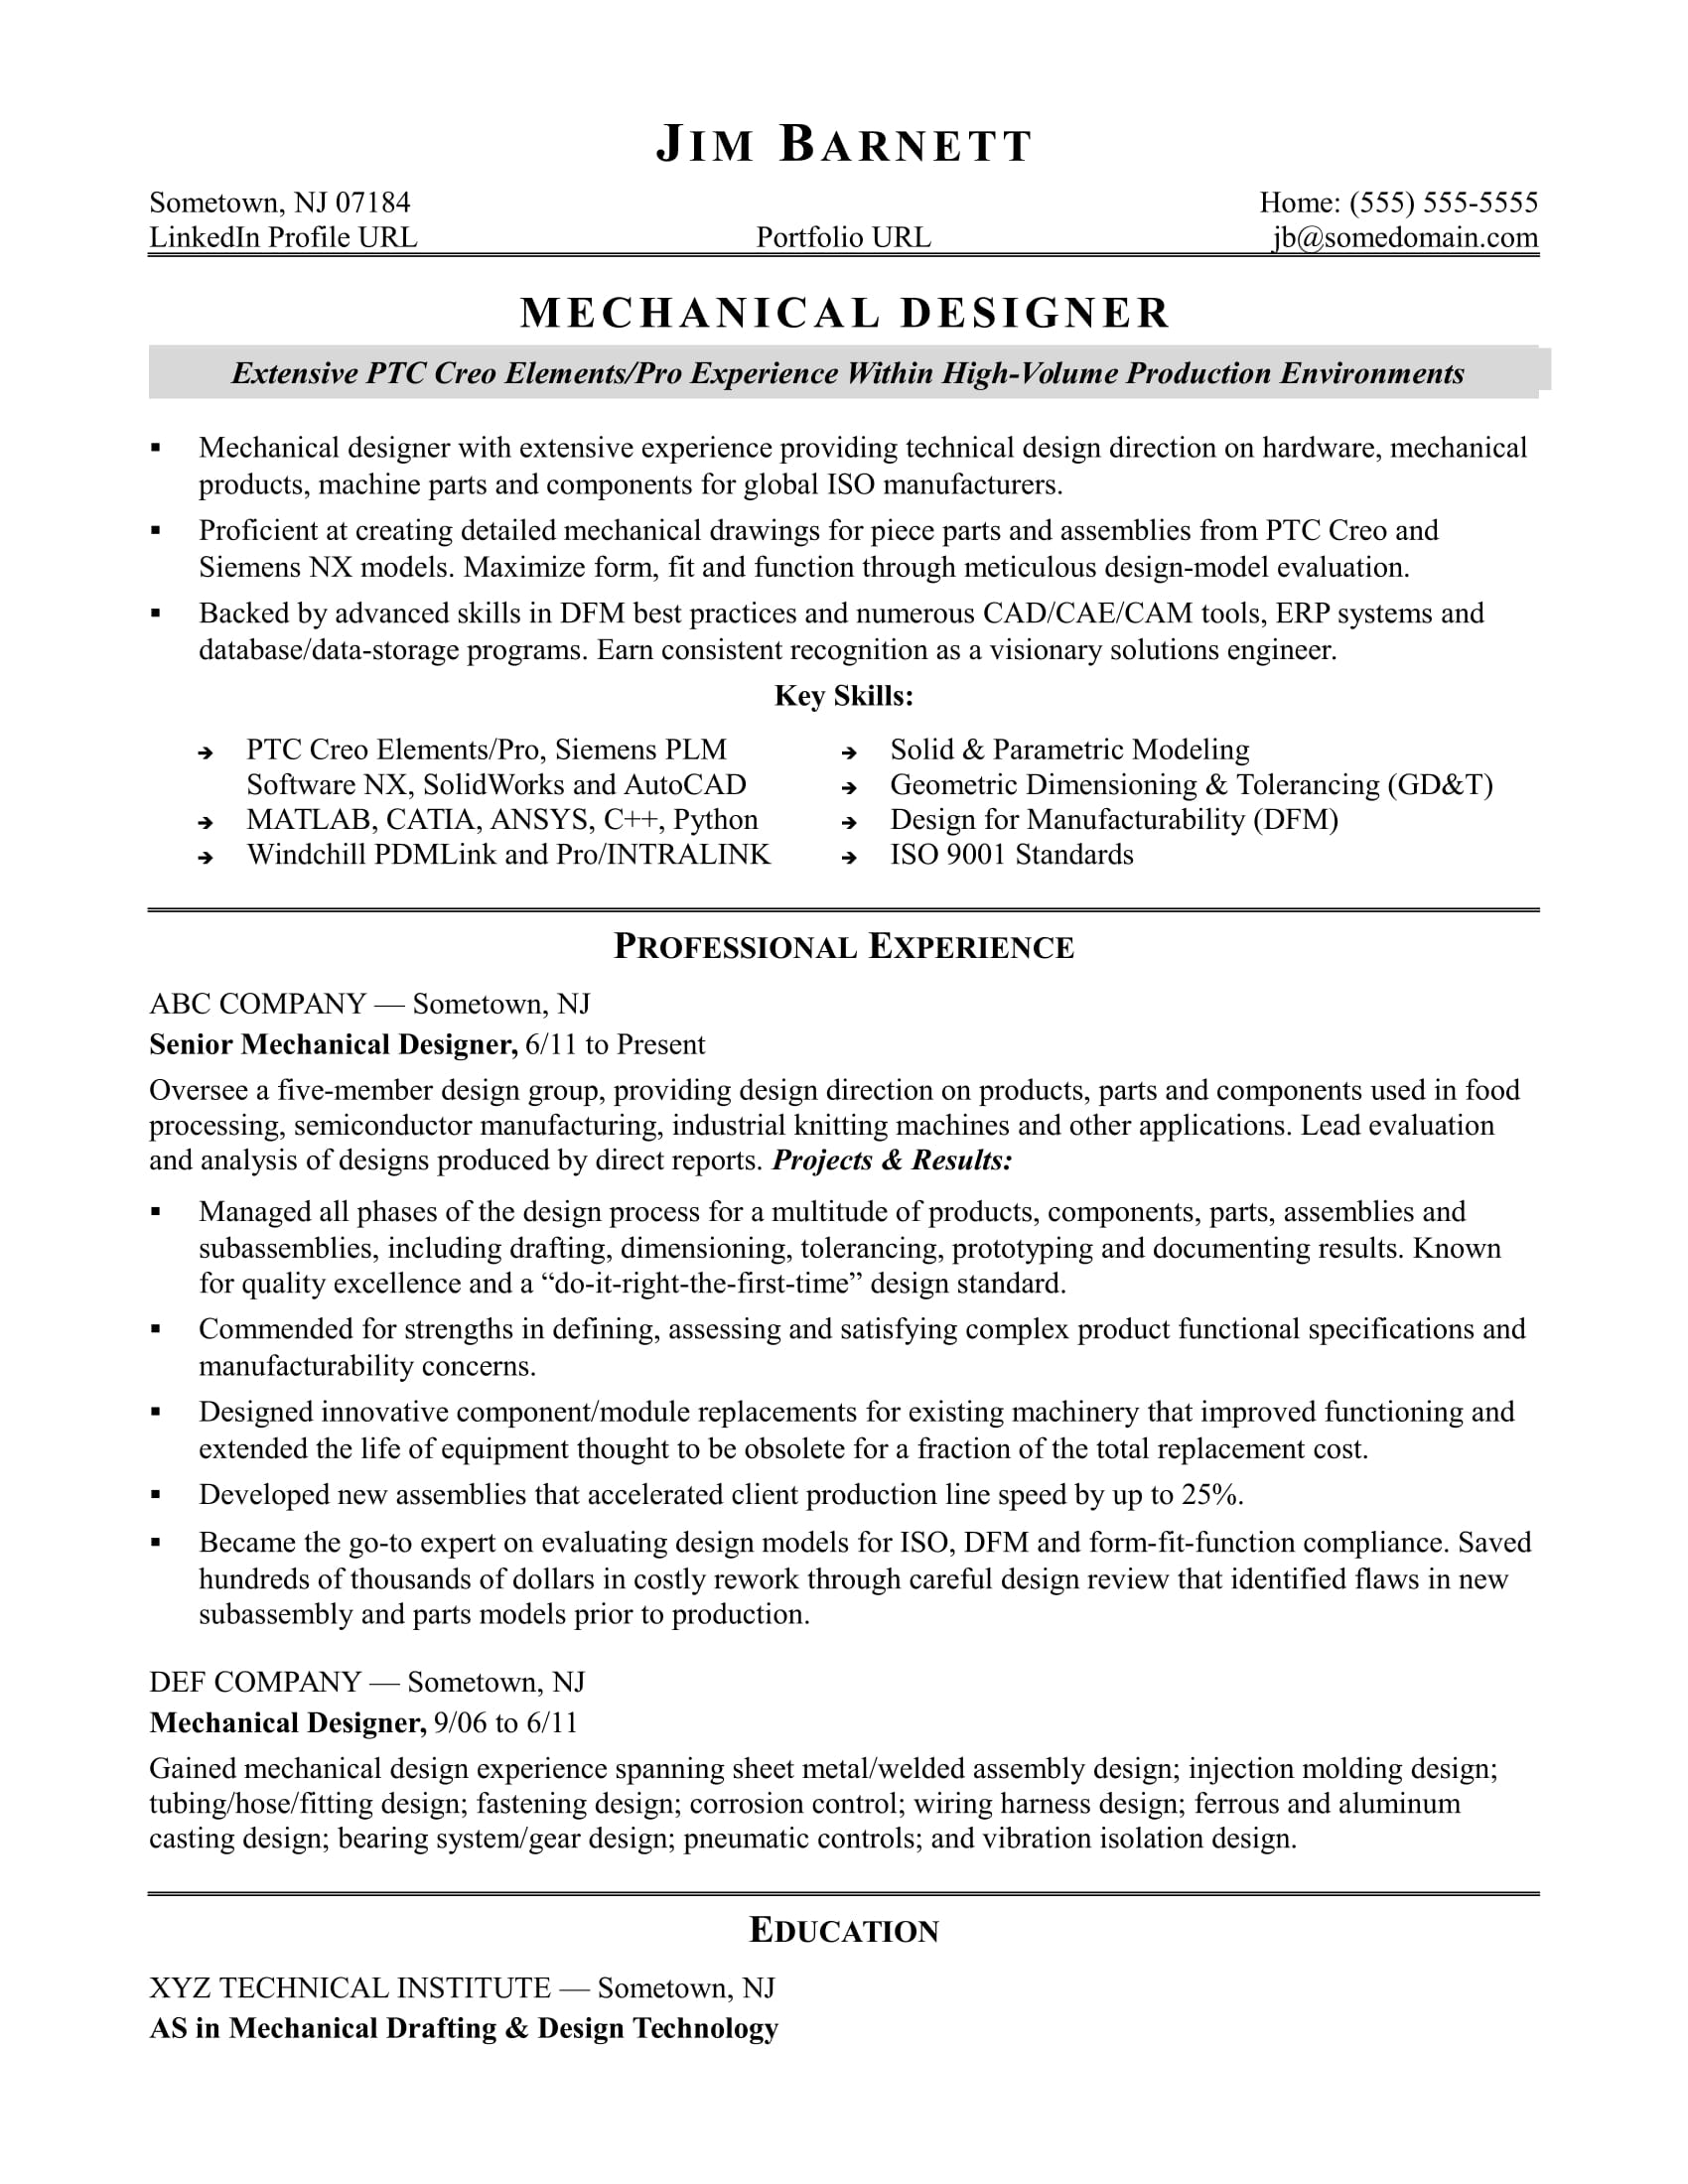 sample resume for an experienced mechanical designer monster experience ideas Resume Experience Ideas For Resume